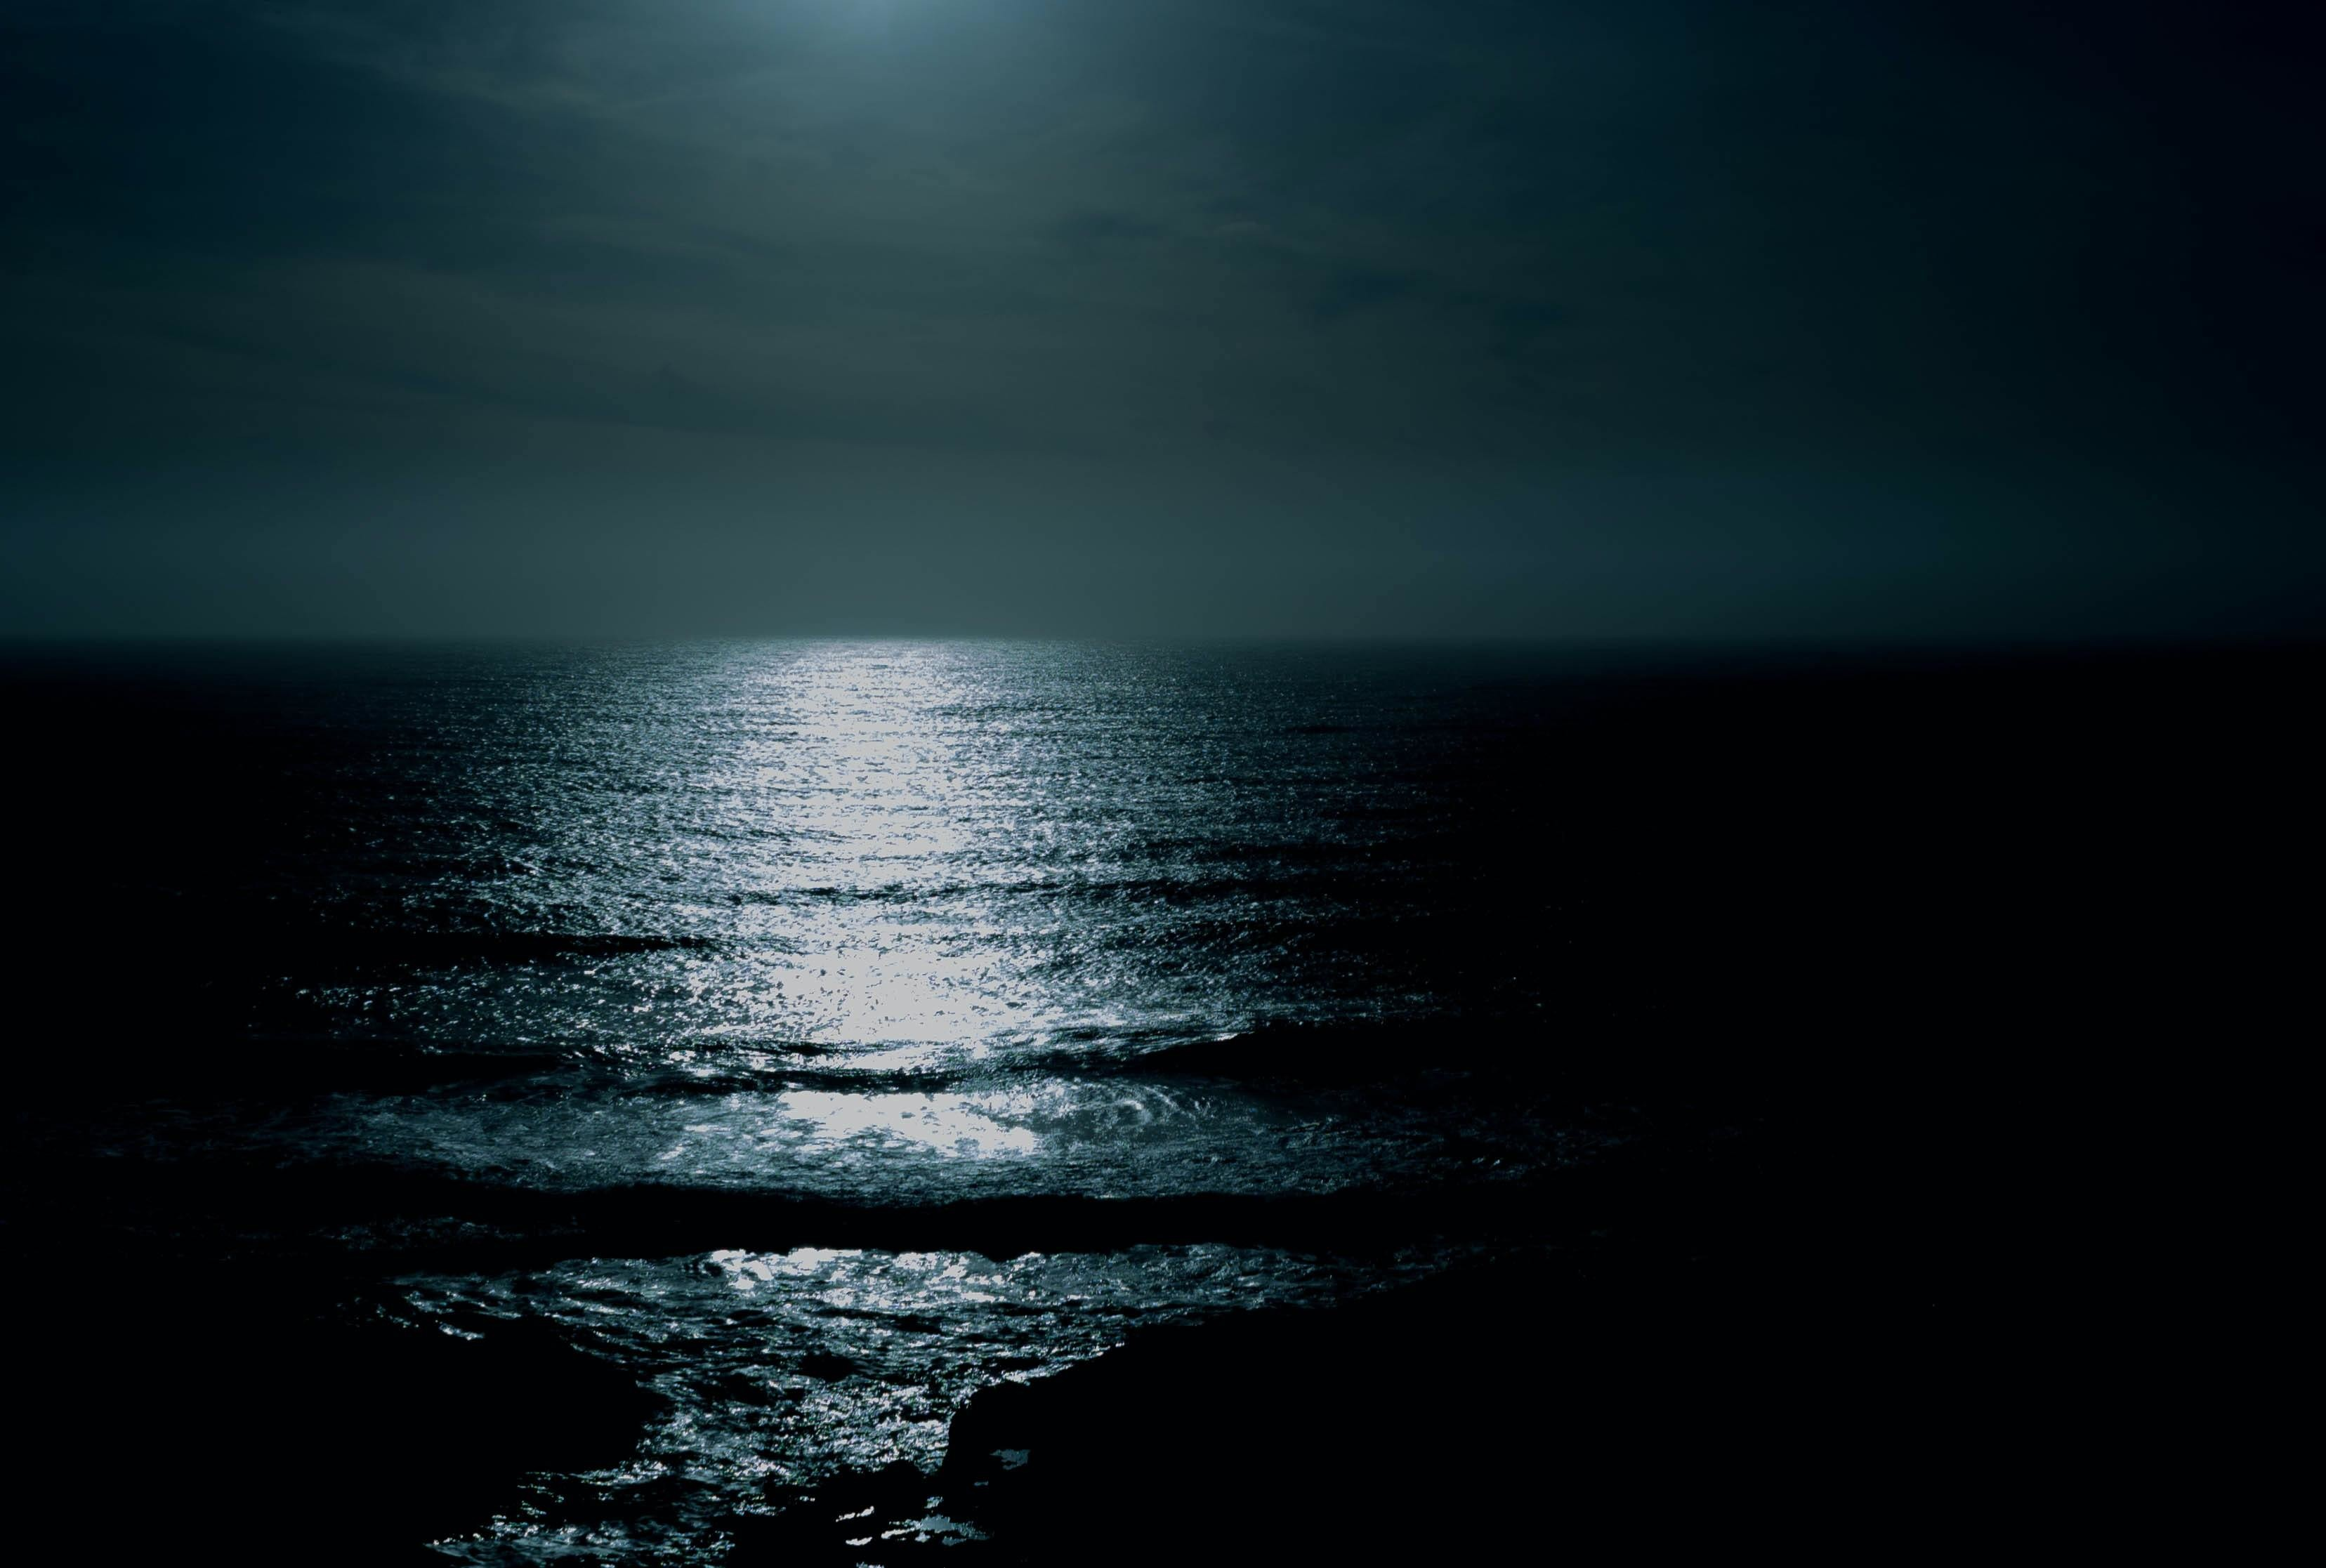 pictured here is the ocean at night. Scientists have been exploring a rare phenomenon whereby the ocean turns a luminous colour, called milky seas